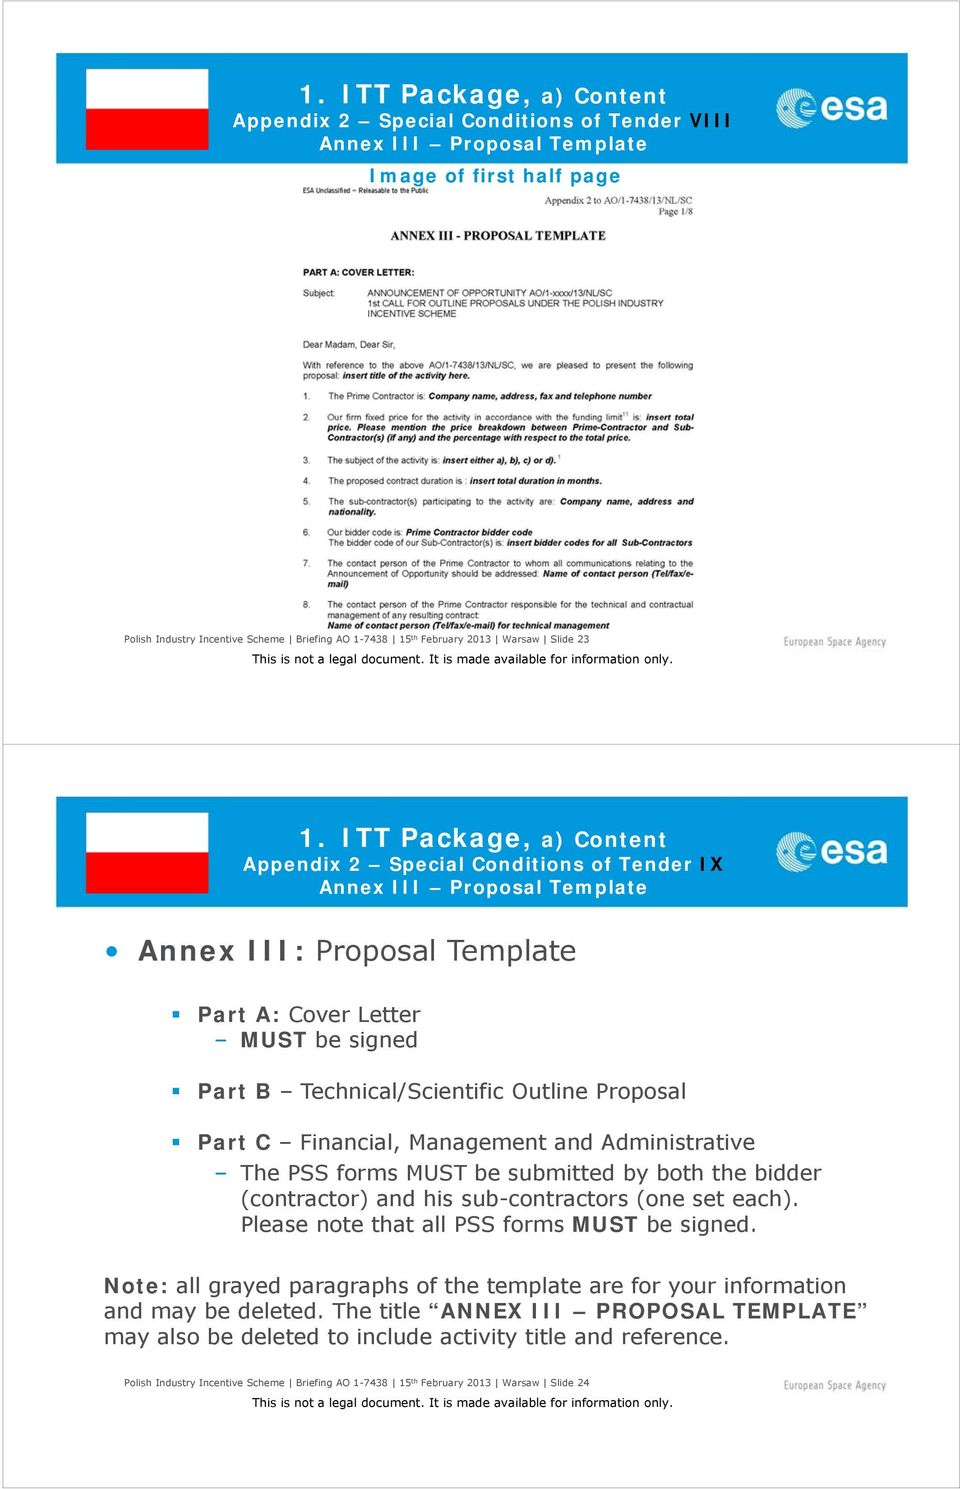 ITT Package, a) Content Appendix 2 Special Conditions of Tender IX Annex III Proposal Template Annex III: Proposal Template Part A: Cover Letter MUST be signed Part B Technical/Scientific Outline